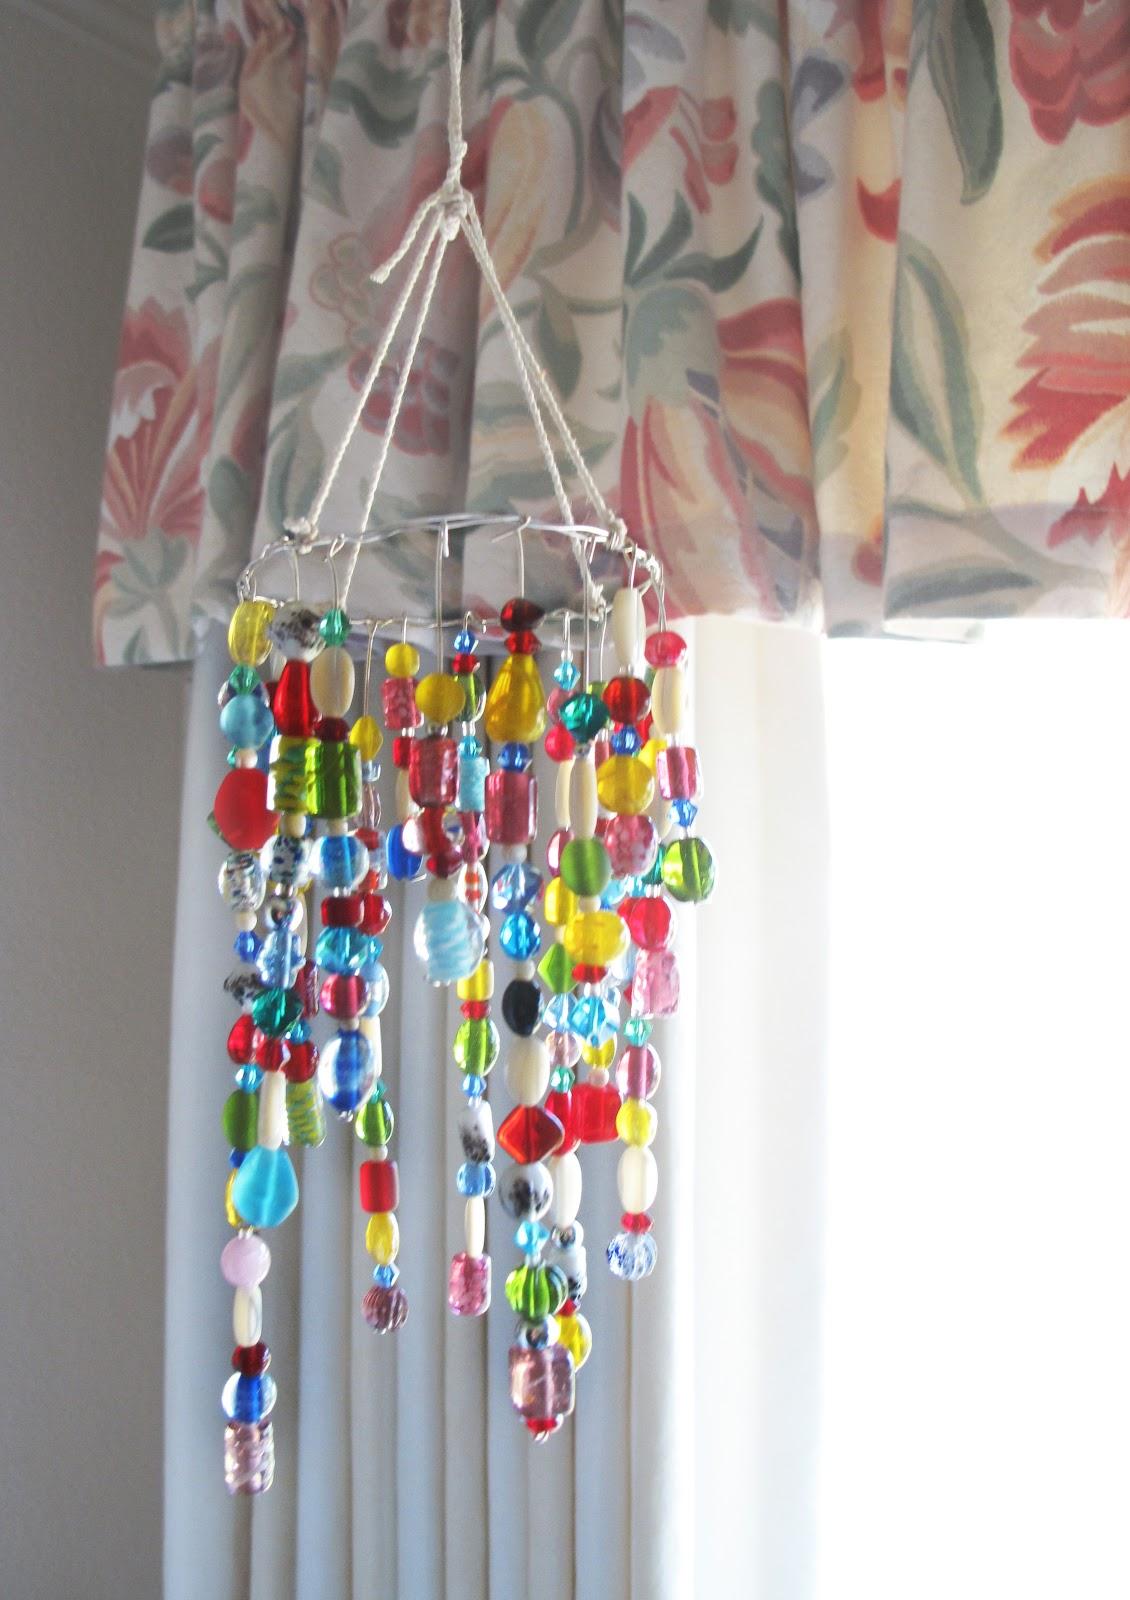 Items To Decorate Living Room: Paint The Tears.: Diy Room Decor